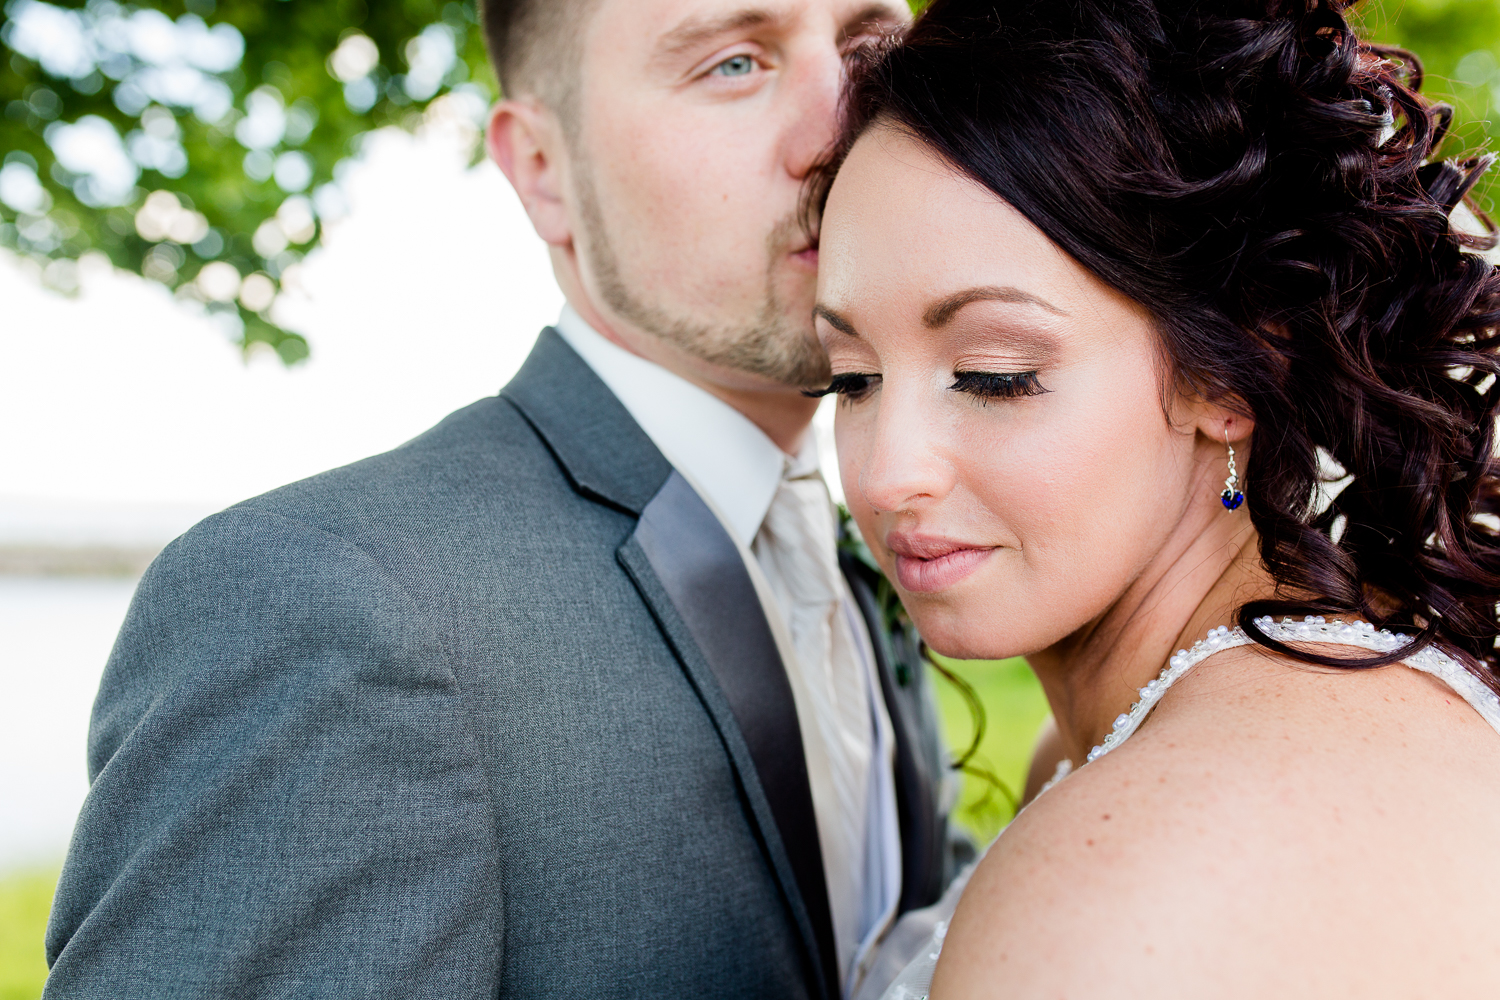 A close up of the bride's face. She has sapphire earrings on. The groom is kissing the side of her head.